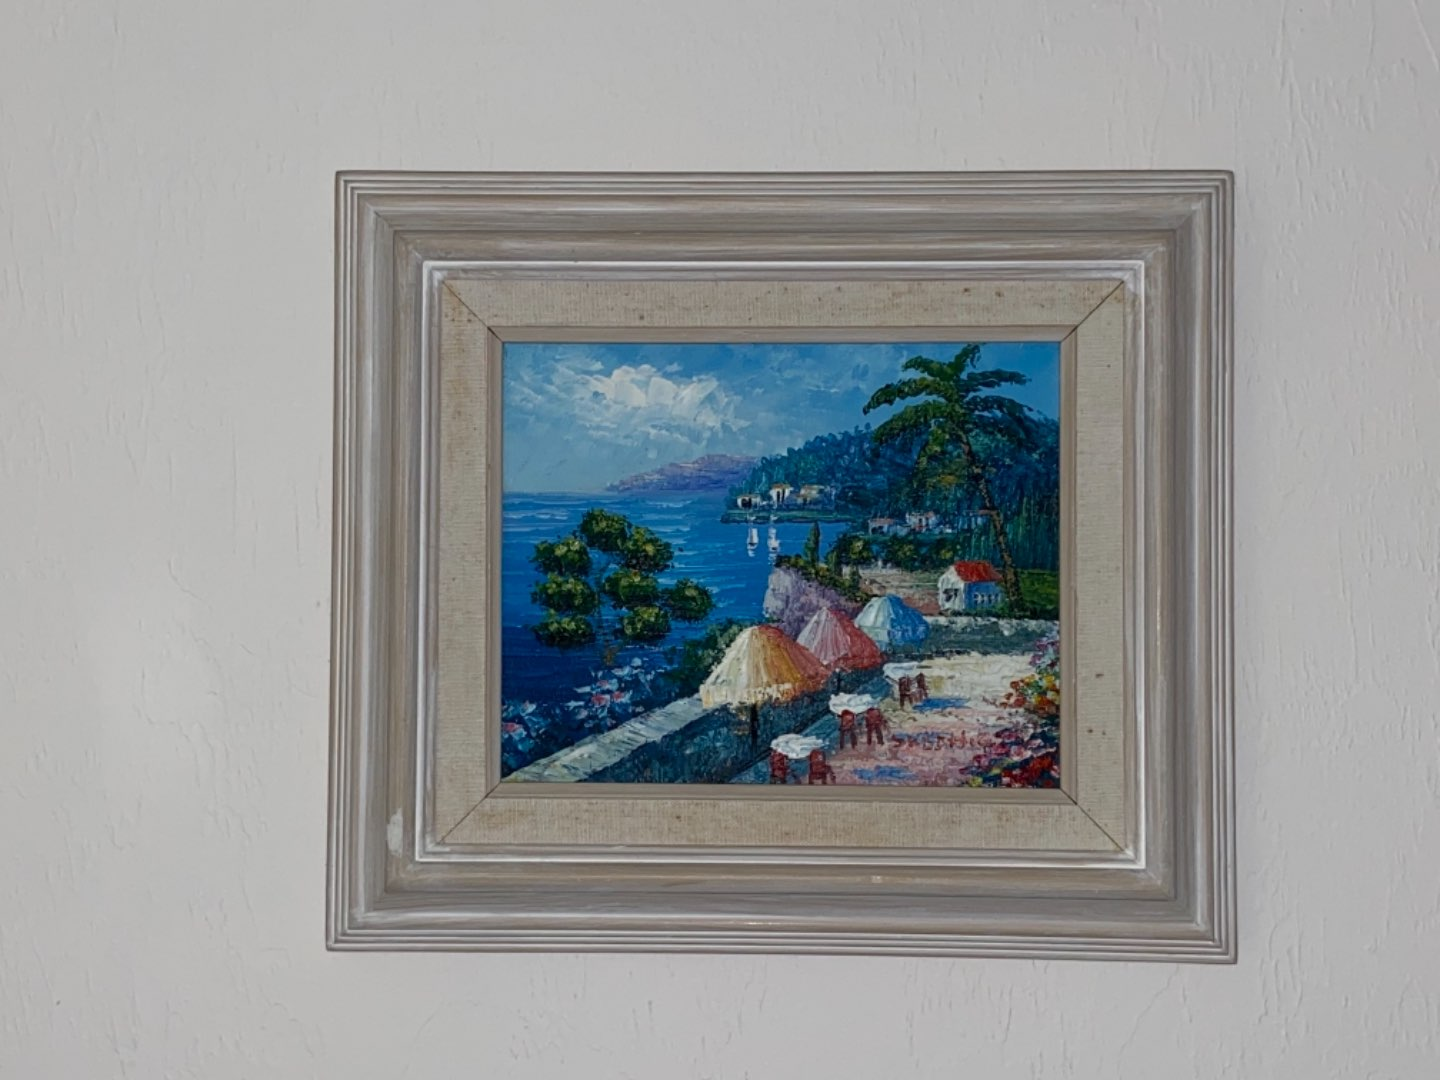 Lot # 211 Beautiful Landscape Oil on Canvas Painting - Signed